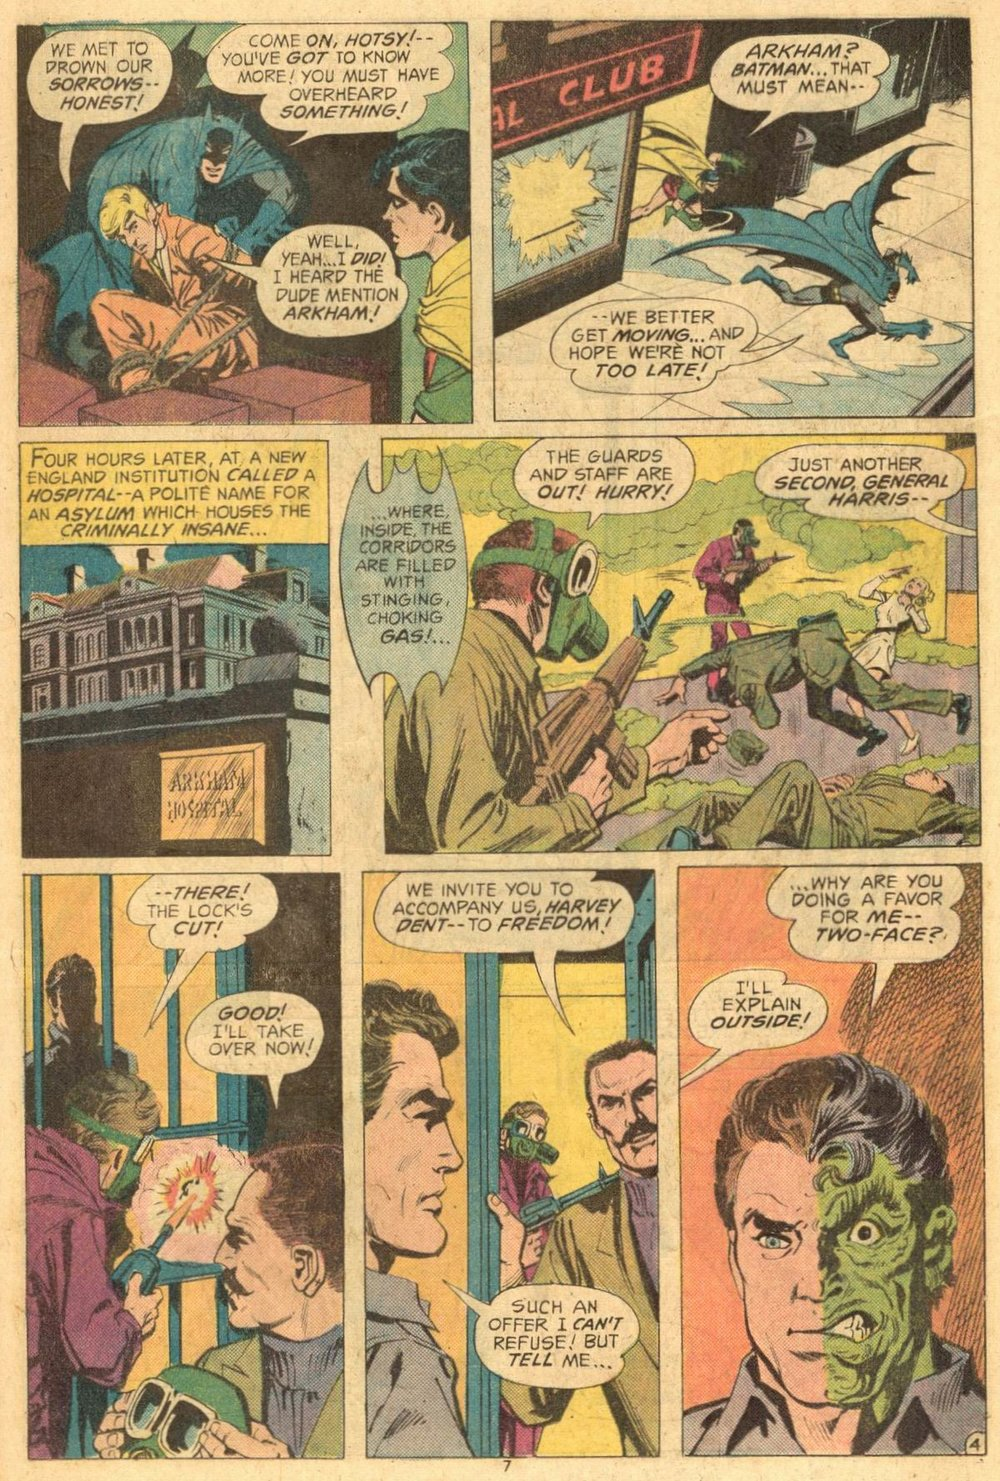 Batman (1940) #258 pg.4, featuring General John Harris.